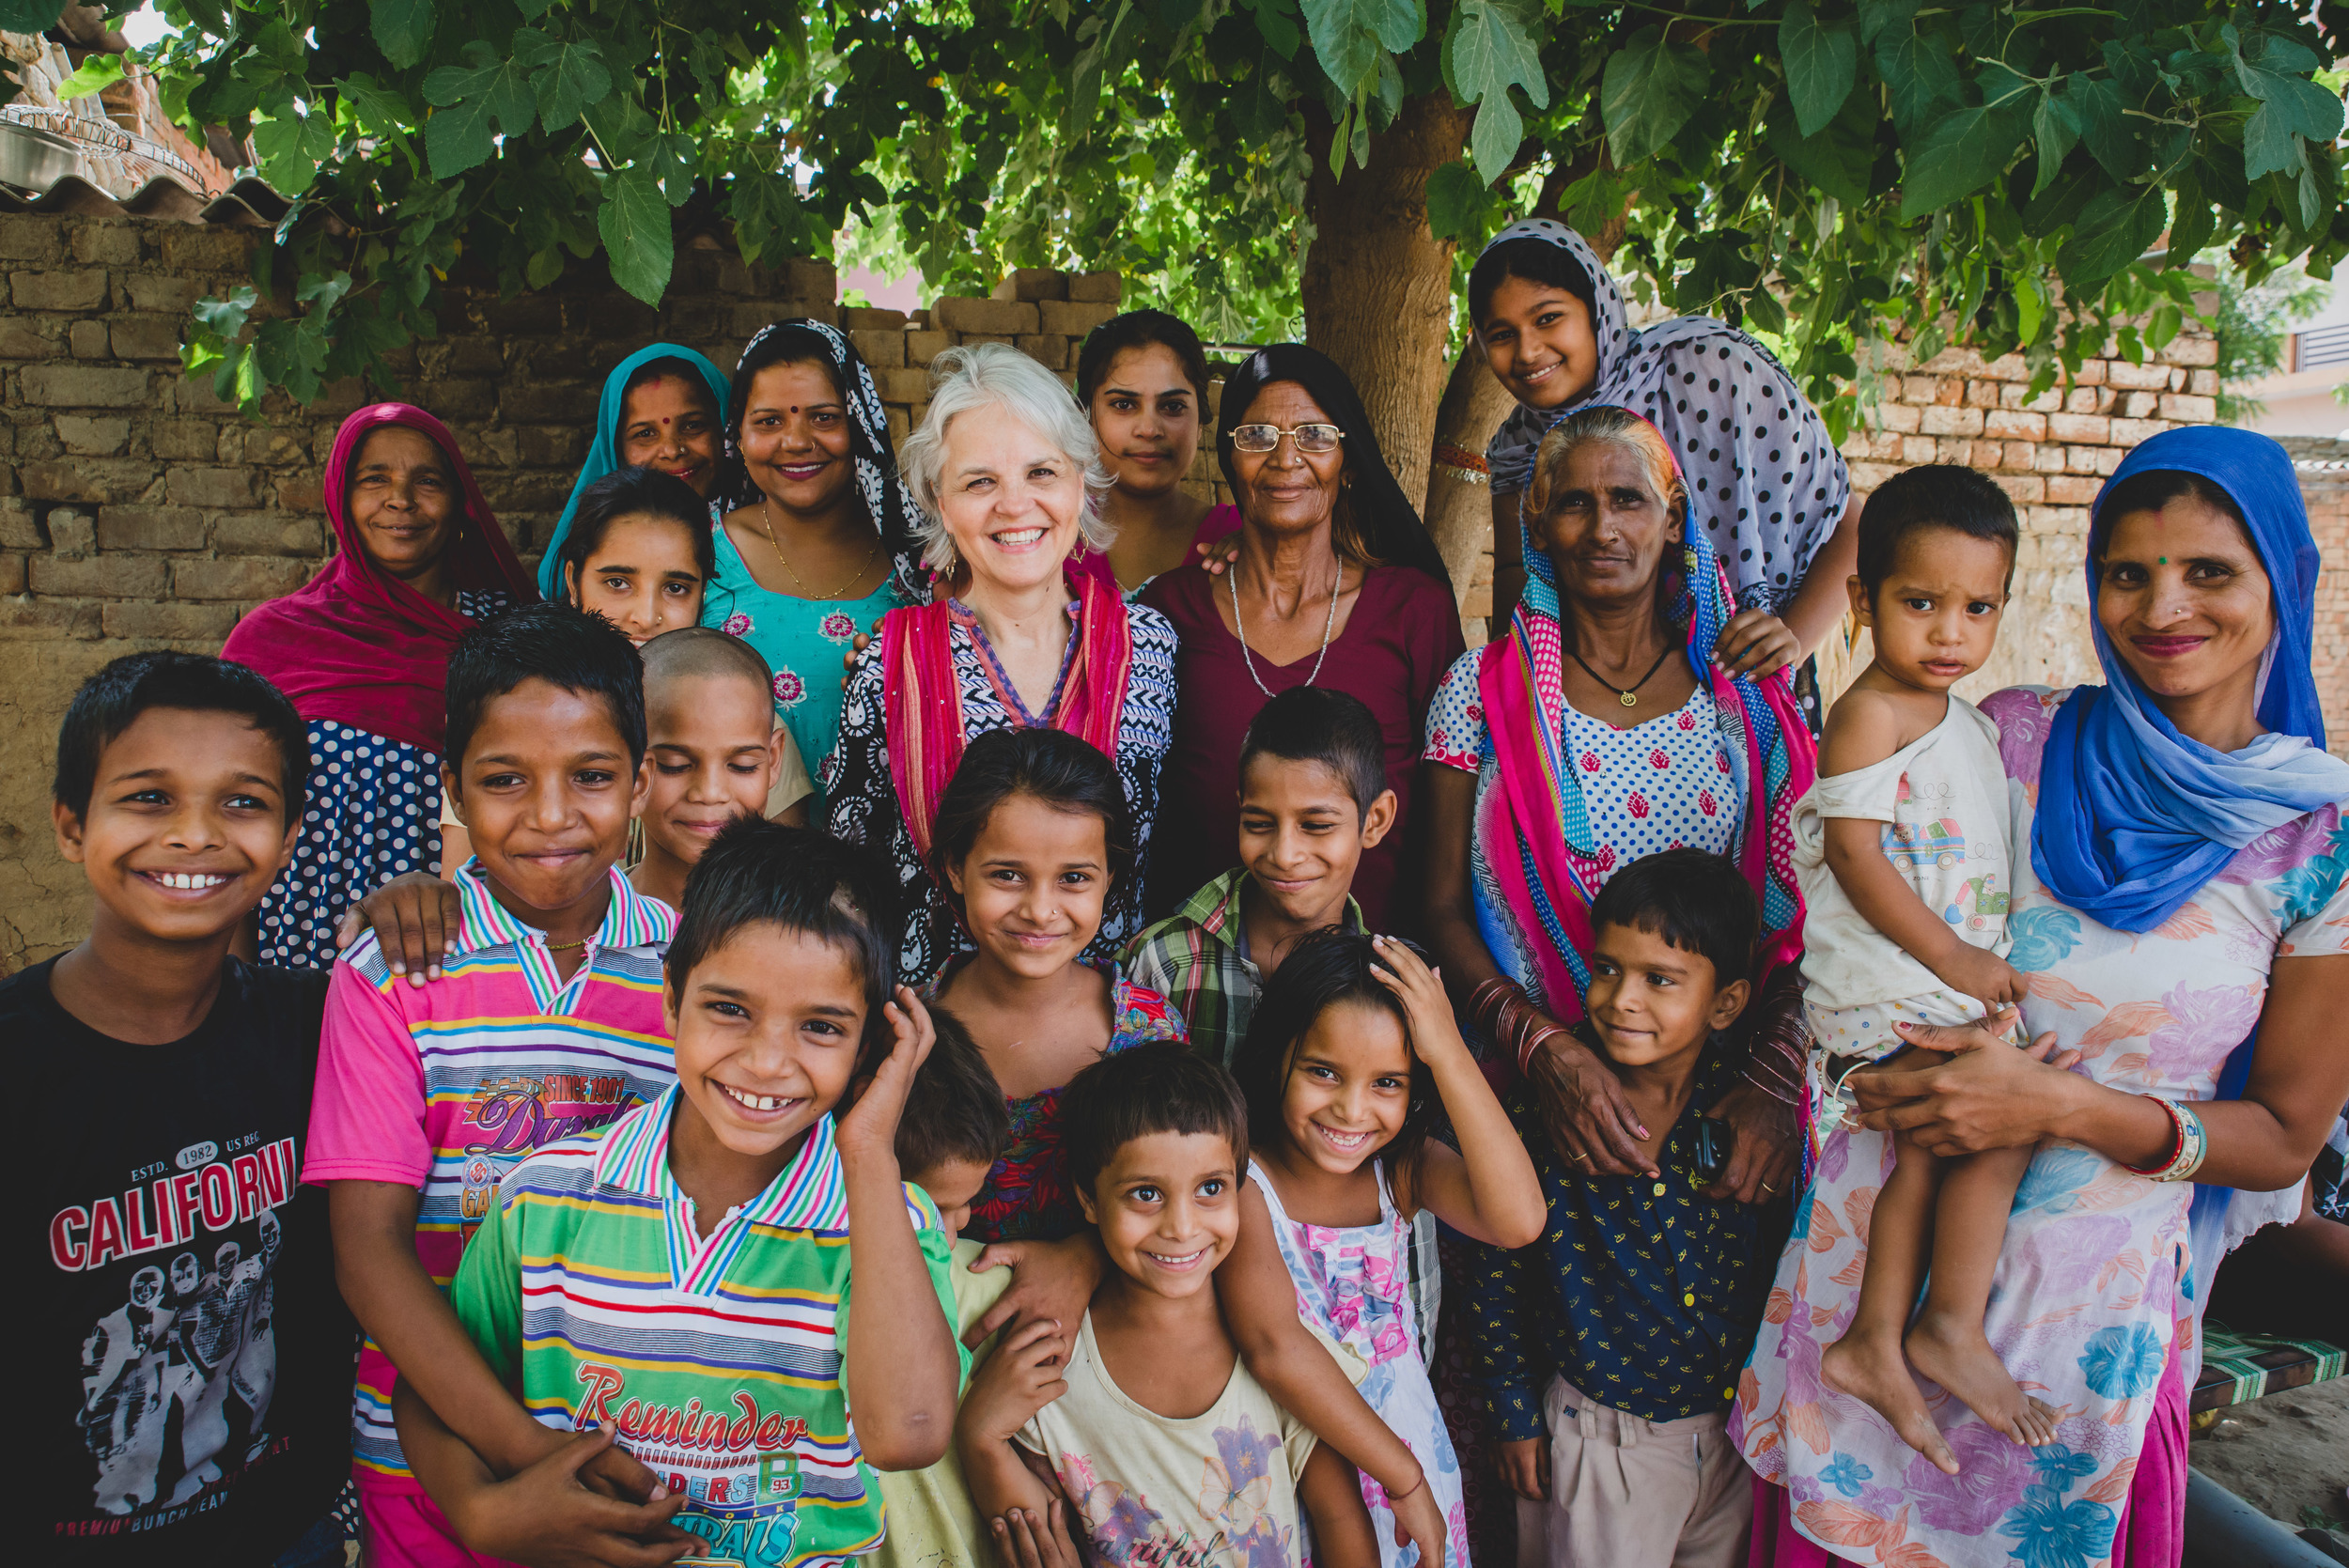 """""""How many of these children did you deliver?"""" I asked as more and more children crowded around to hear what we were talking about. A wide smile spread over her face and with pride, she answered,""""I delivered all of them."""""""